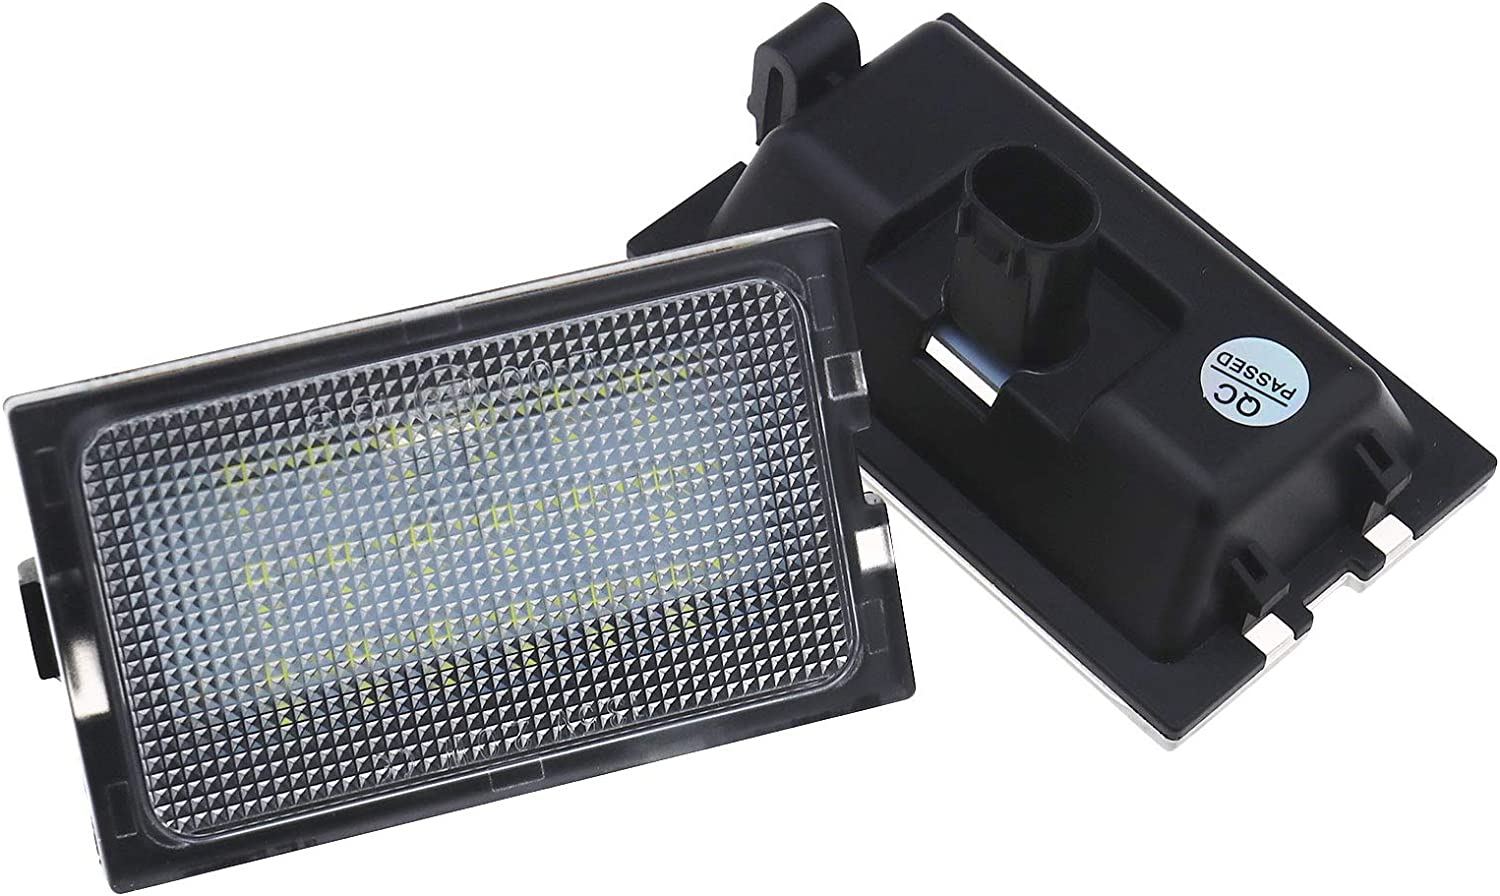 2Pcs LED Licence Number Plate Light Assembly Low Power Compatible with Range Rover Sport Vehicles L320